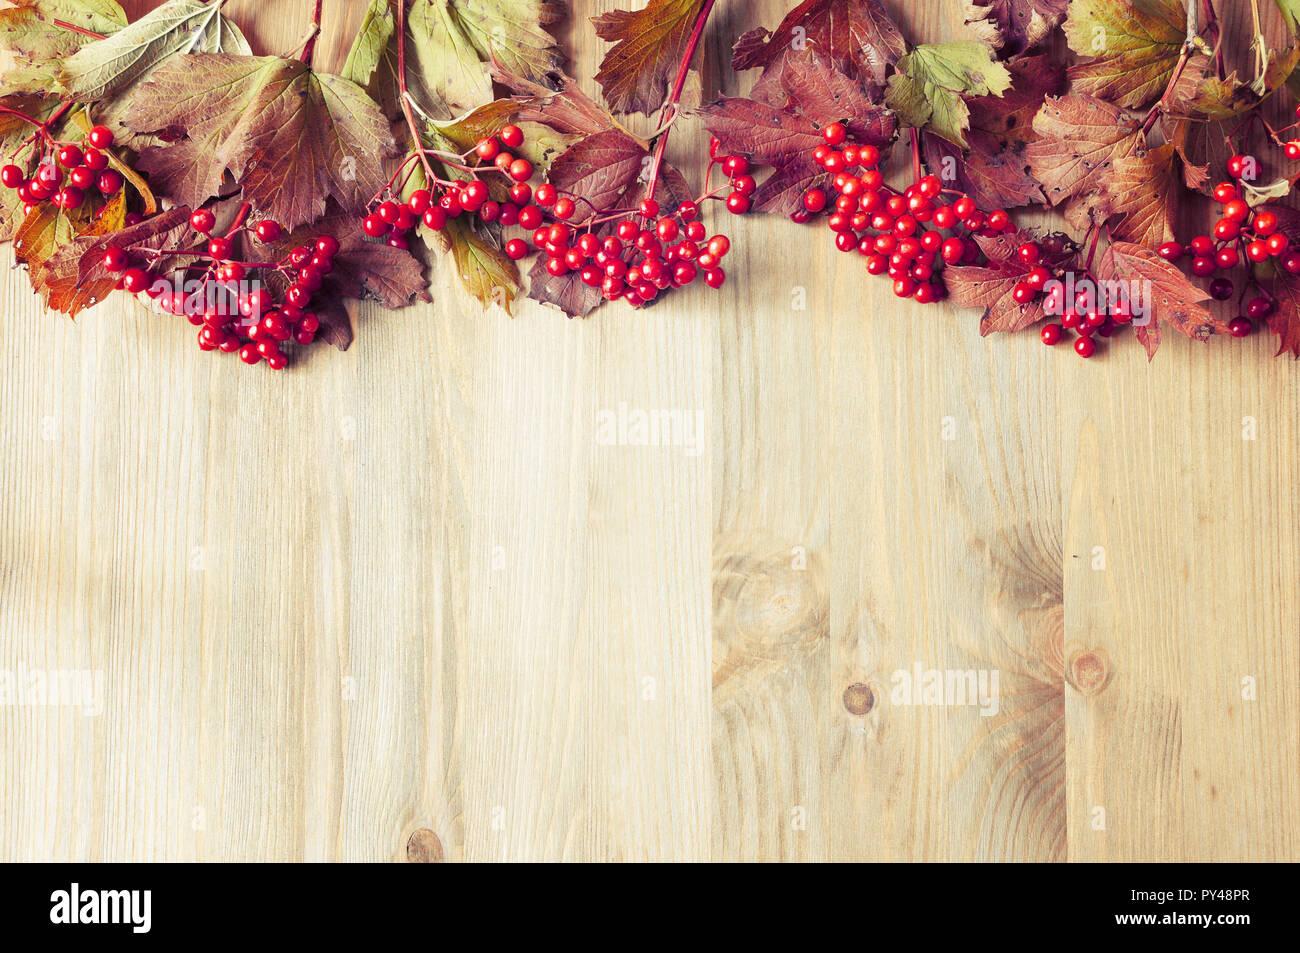 Autumn background with seasonal autumn nature berries of Viburnum opulus or guelder rose on the wooden background - Stock Image